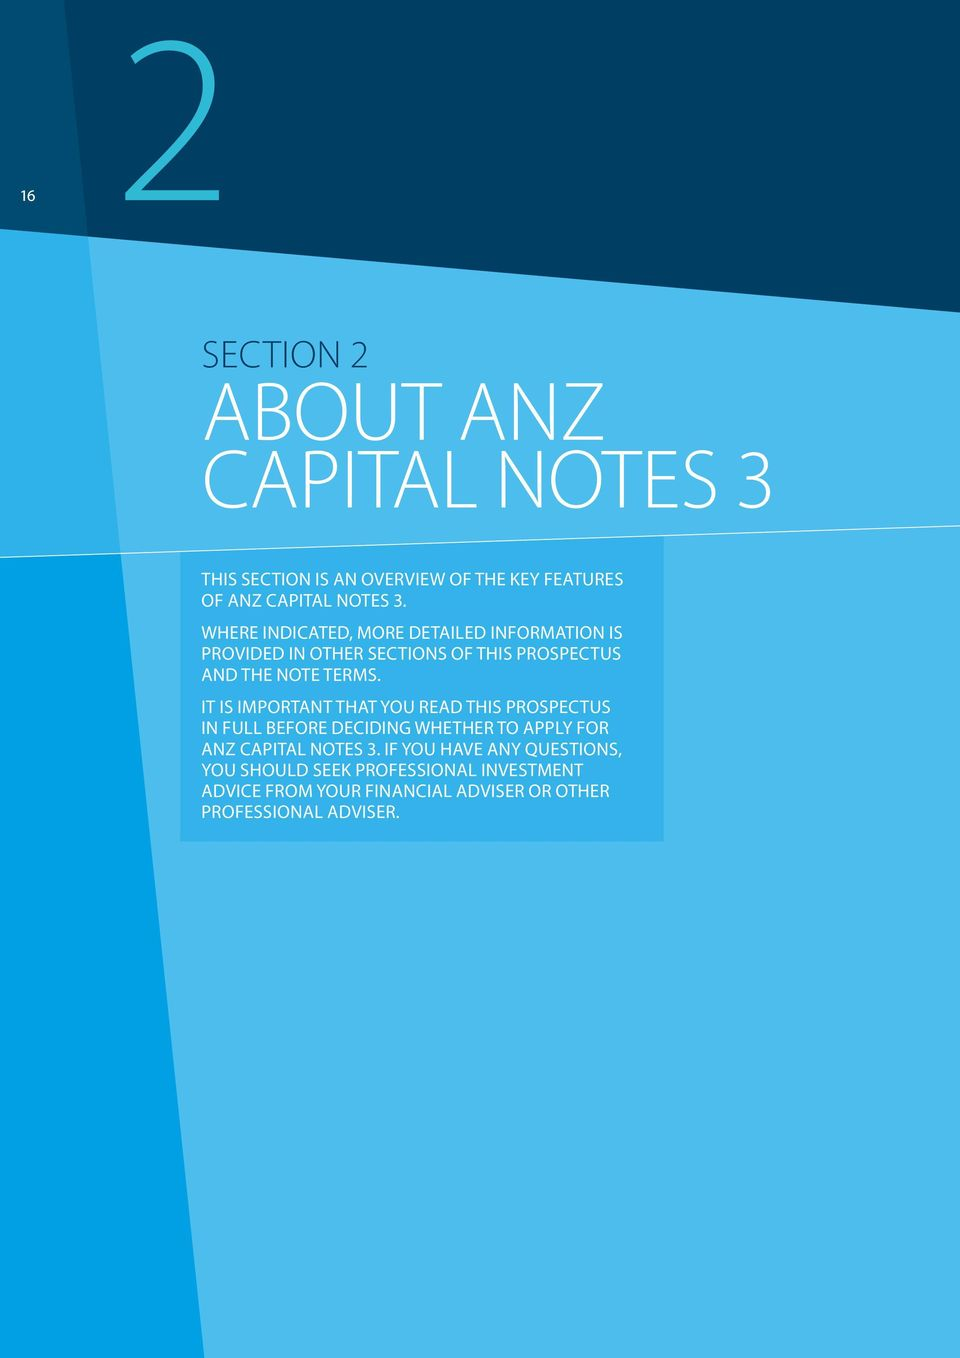 IT IS IMPORTANT THAT YOU READ THIS PROSPECTUS IN FULL BEFORE DECIDING WHETHER TO APPLY FOR ANZ CAPITAL NOTES 3.